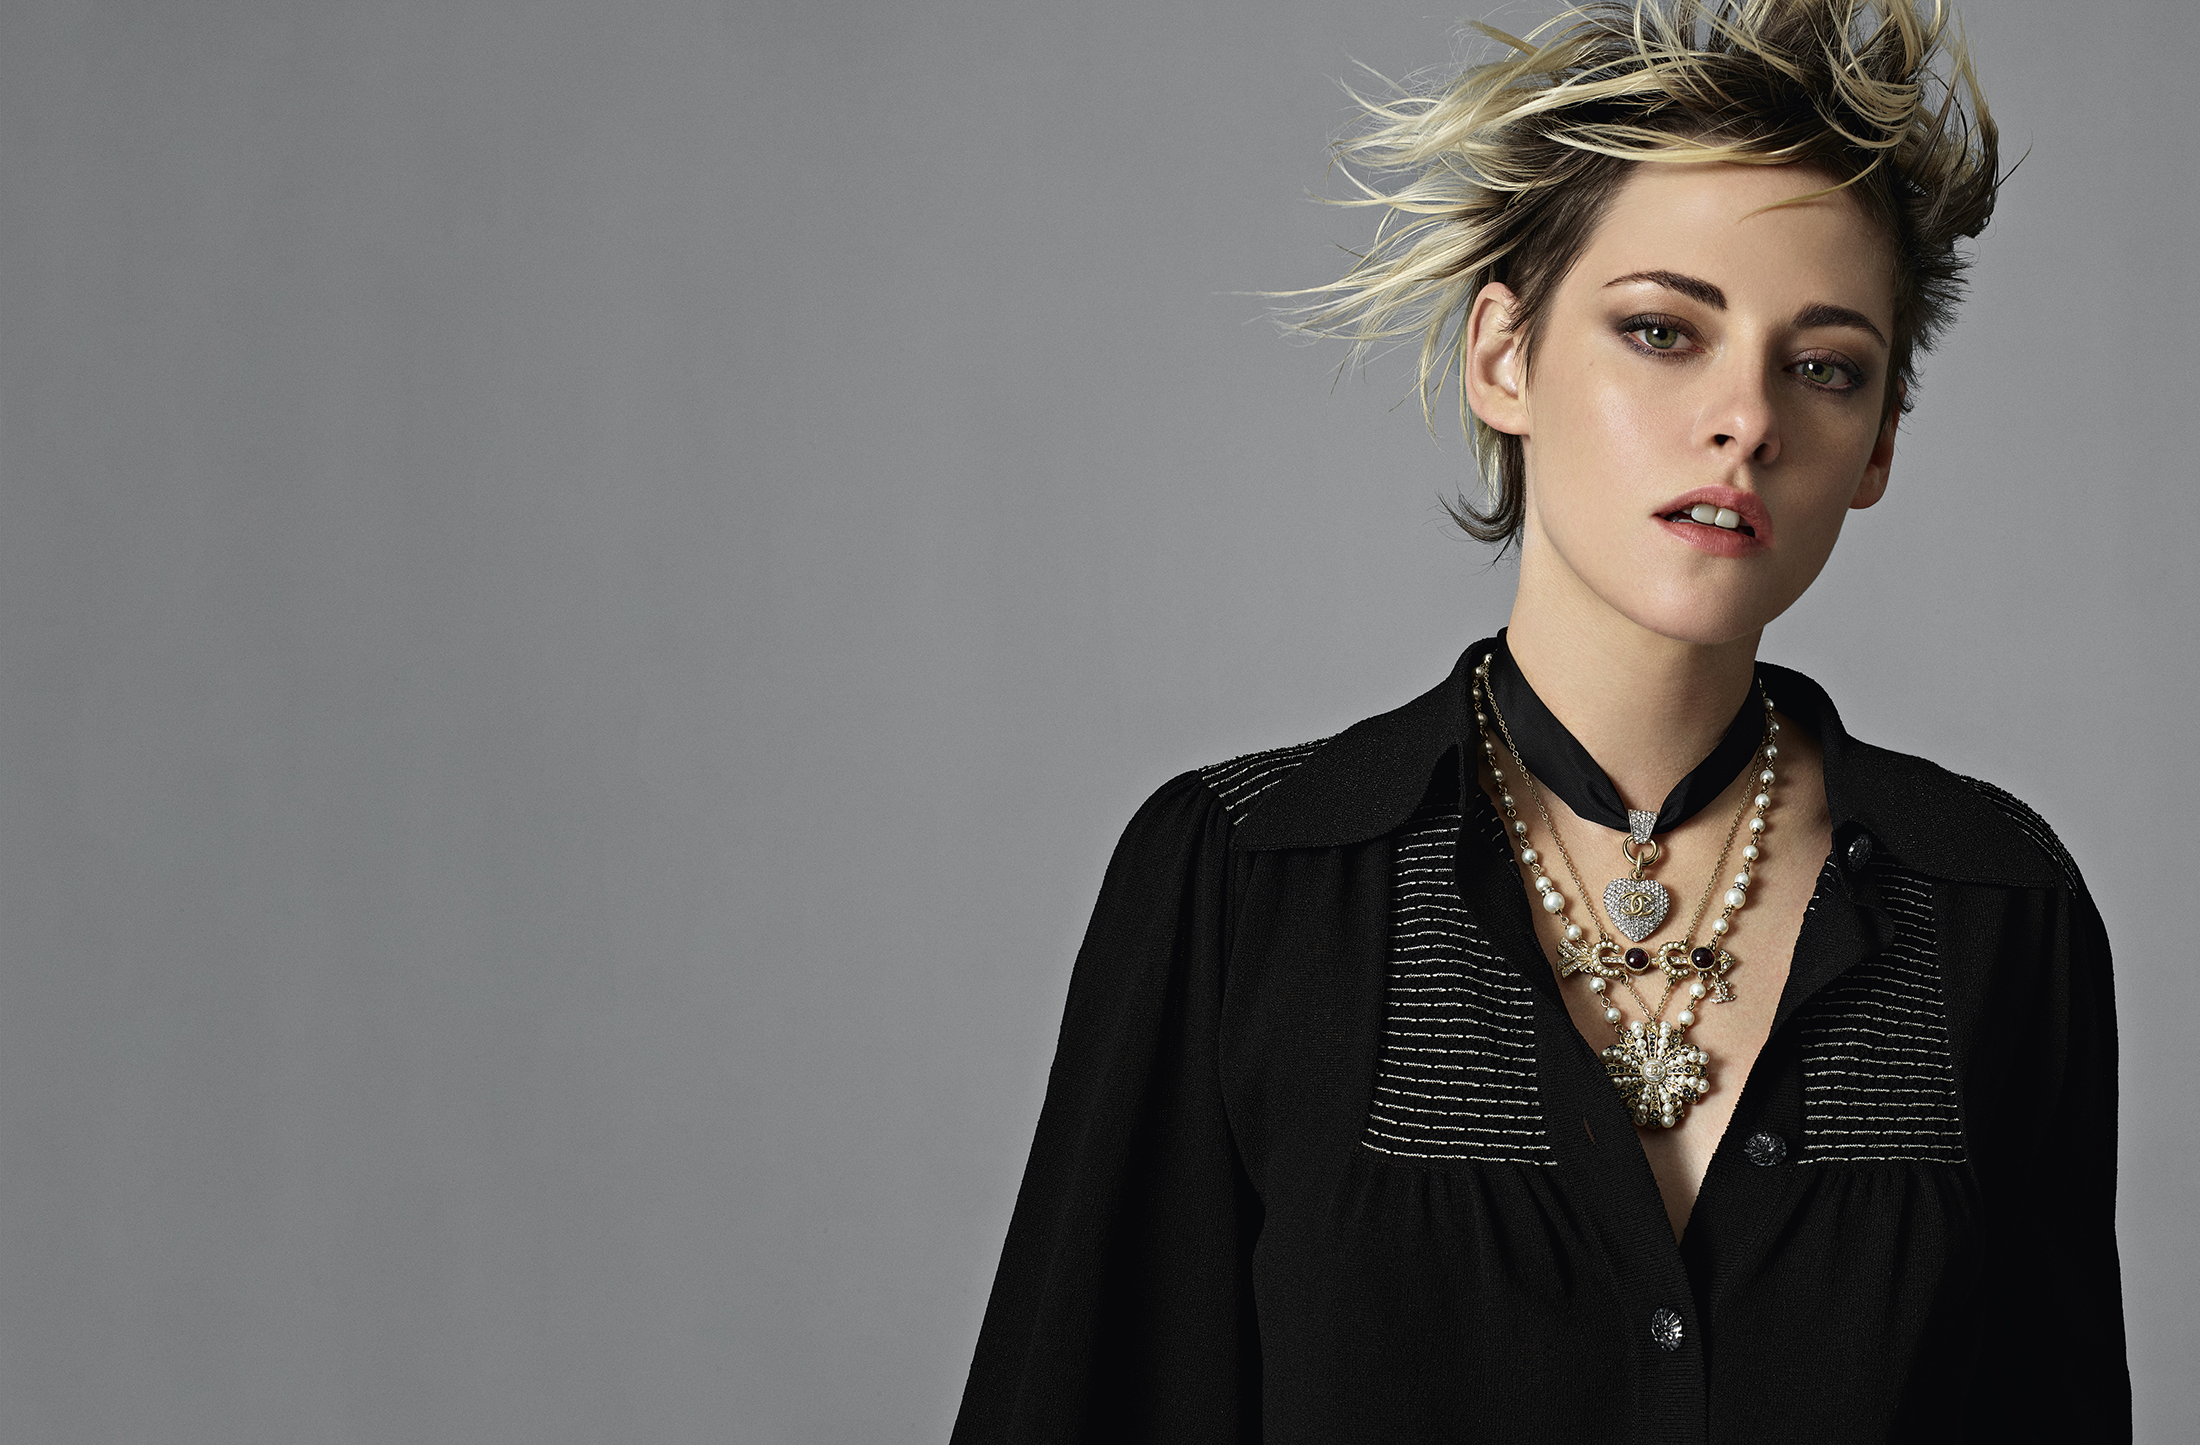 Chanel Spring 2020 Fashion Ad Campaign with Kristen Stewart Photos